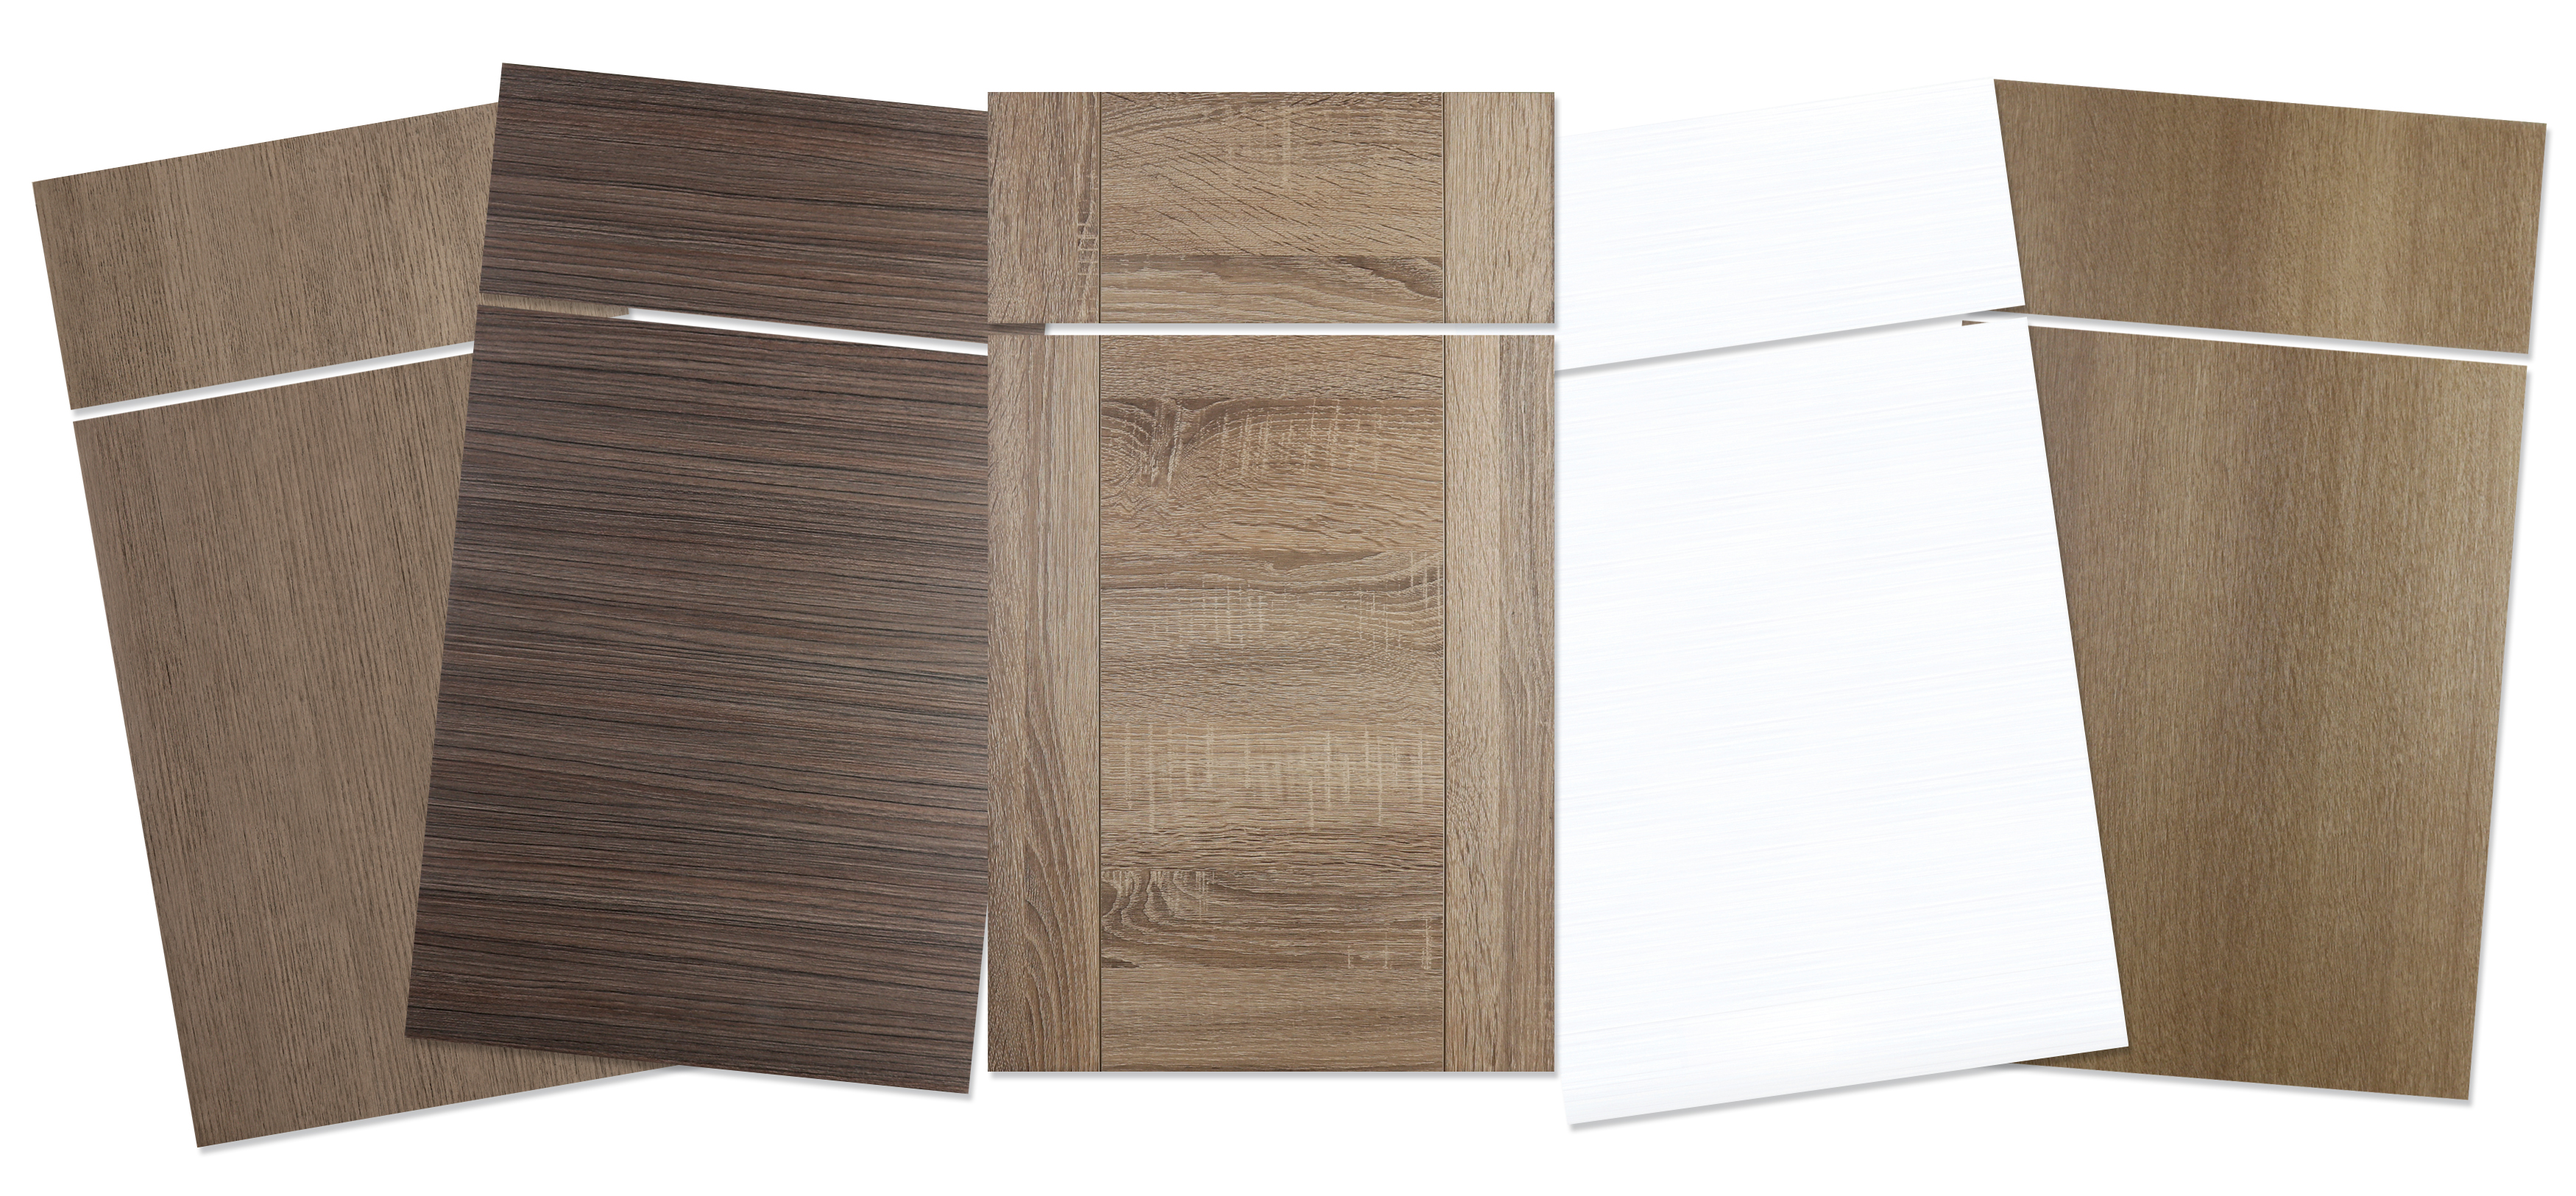 A sample of slab door styles from Dura Supreme Cabinetry.